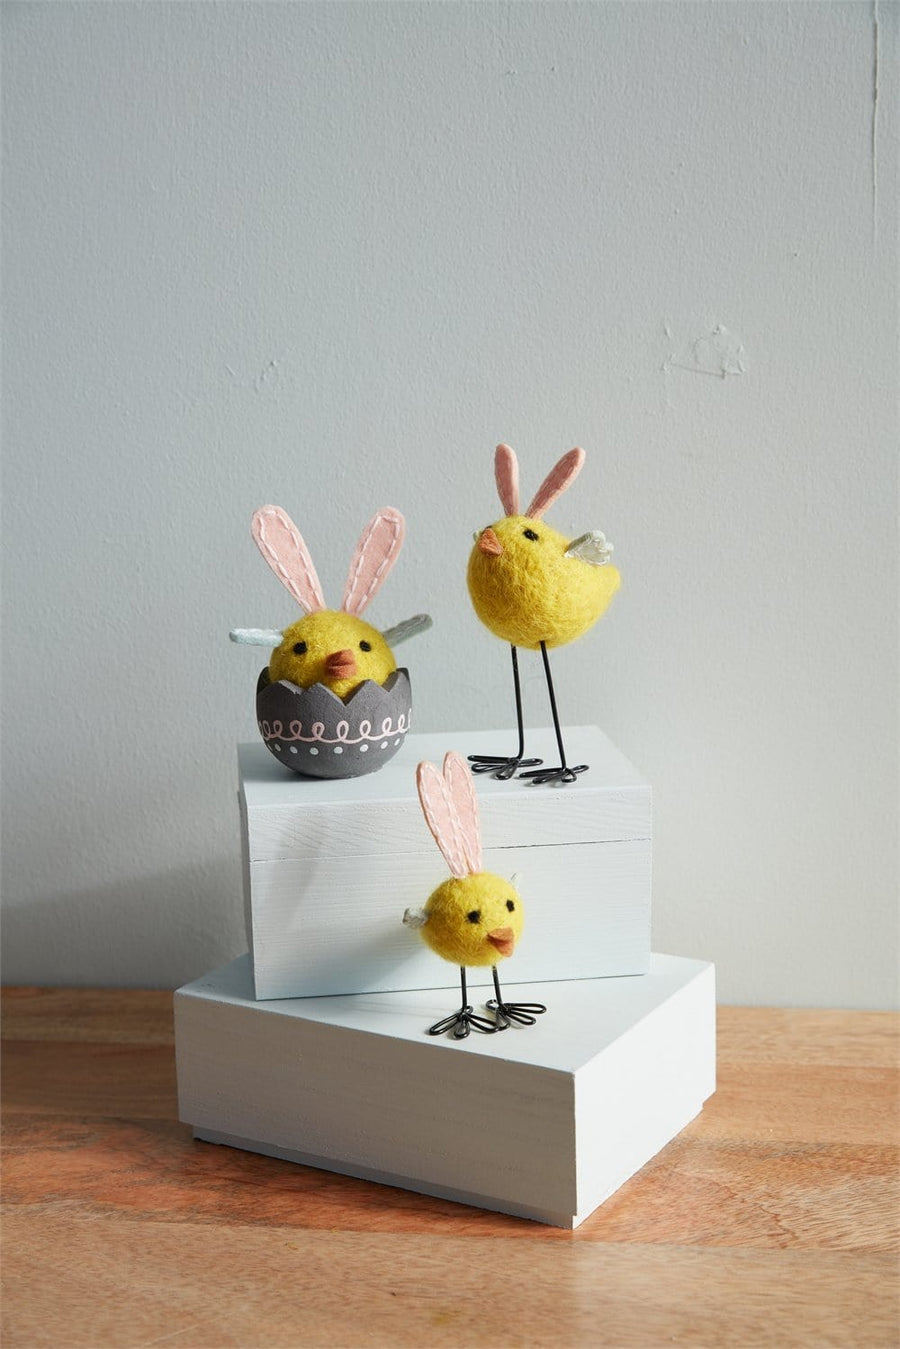 Bunny-Eared Chick Figurine - Egg (Coming Soon)